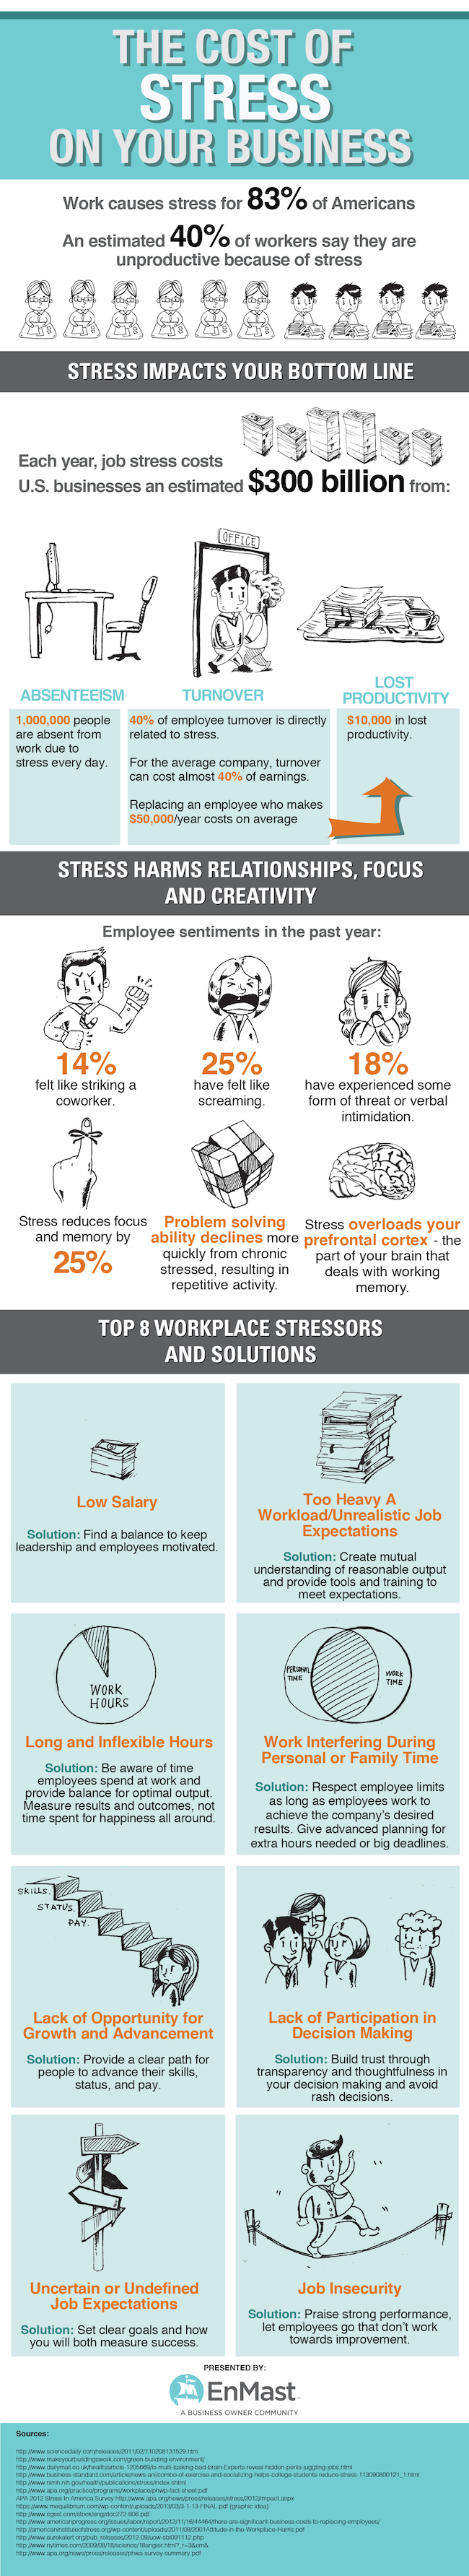 The-Cost-of-Stress-on-Business-Small